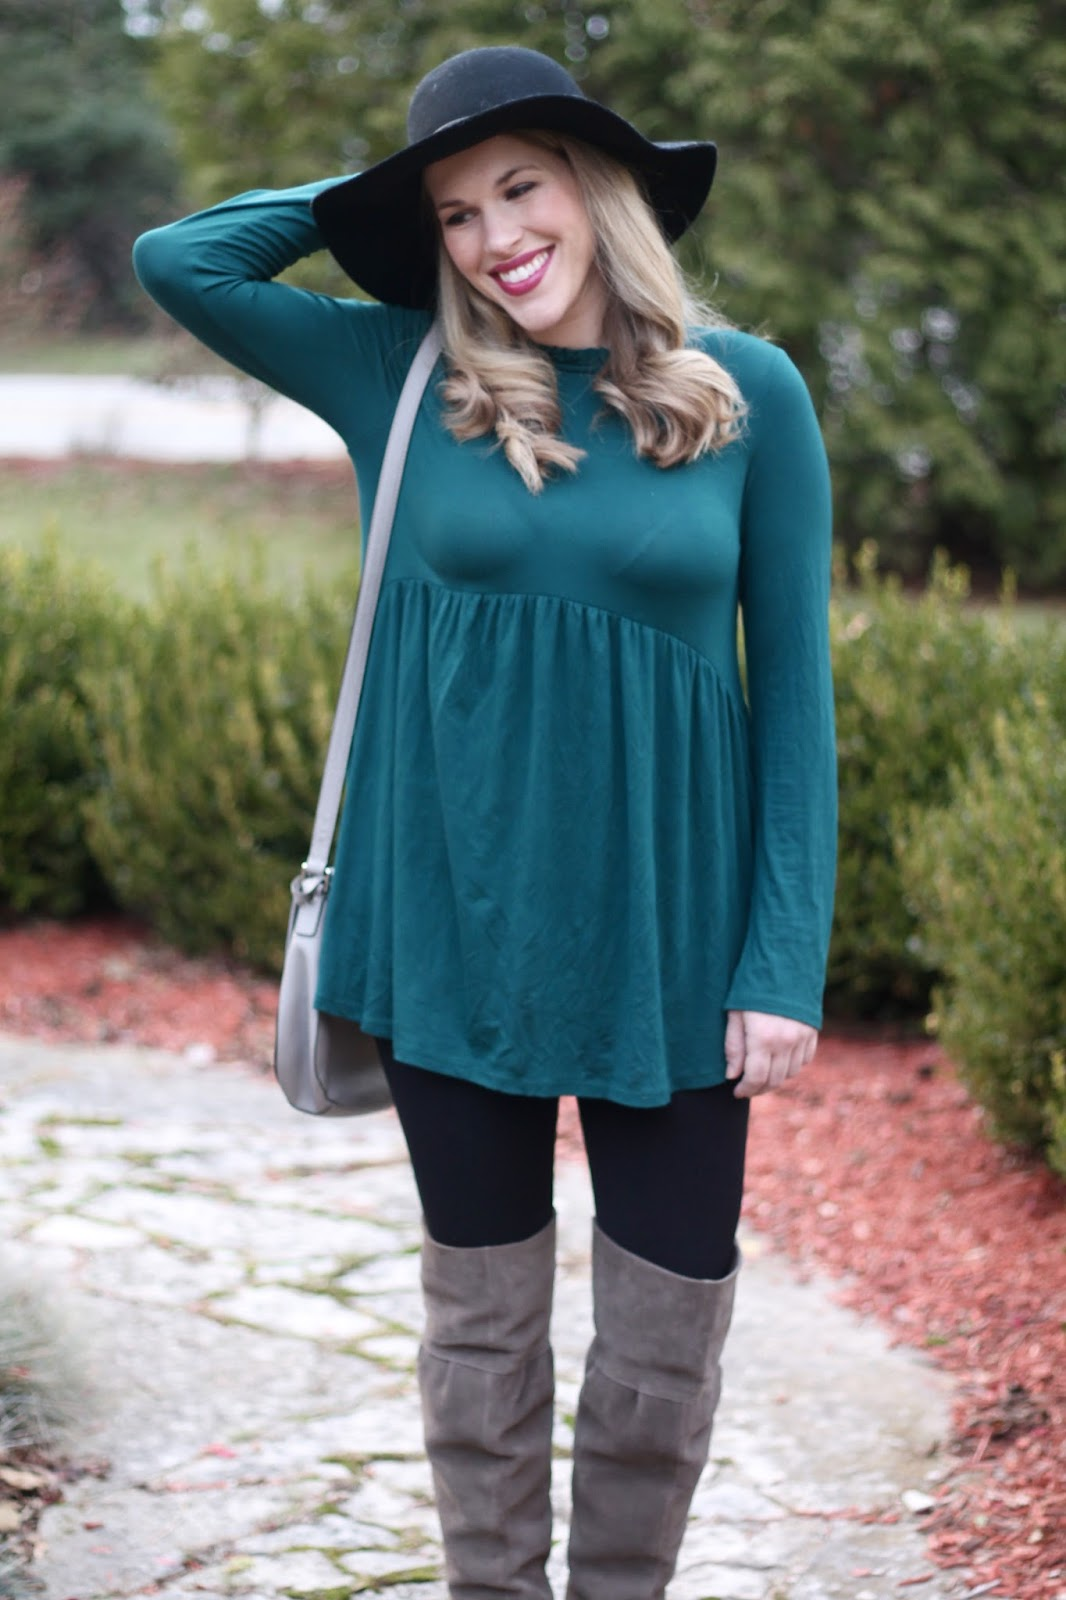 PinkBlush teal tunic, black leggings, grey OTK boots, grey saddlebag, fall outfit with leggings